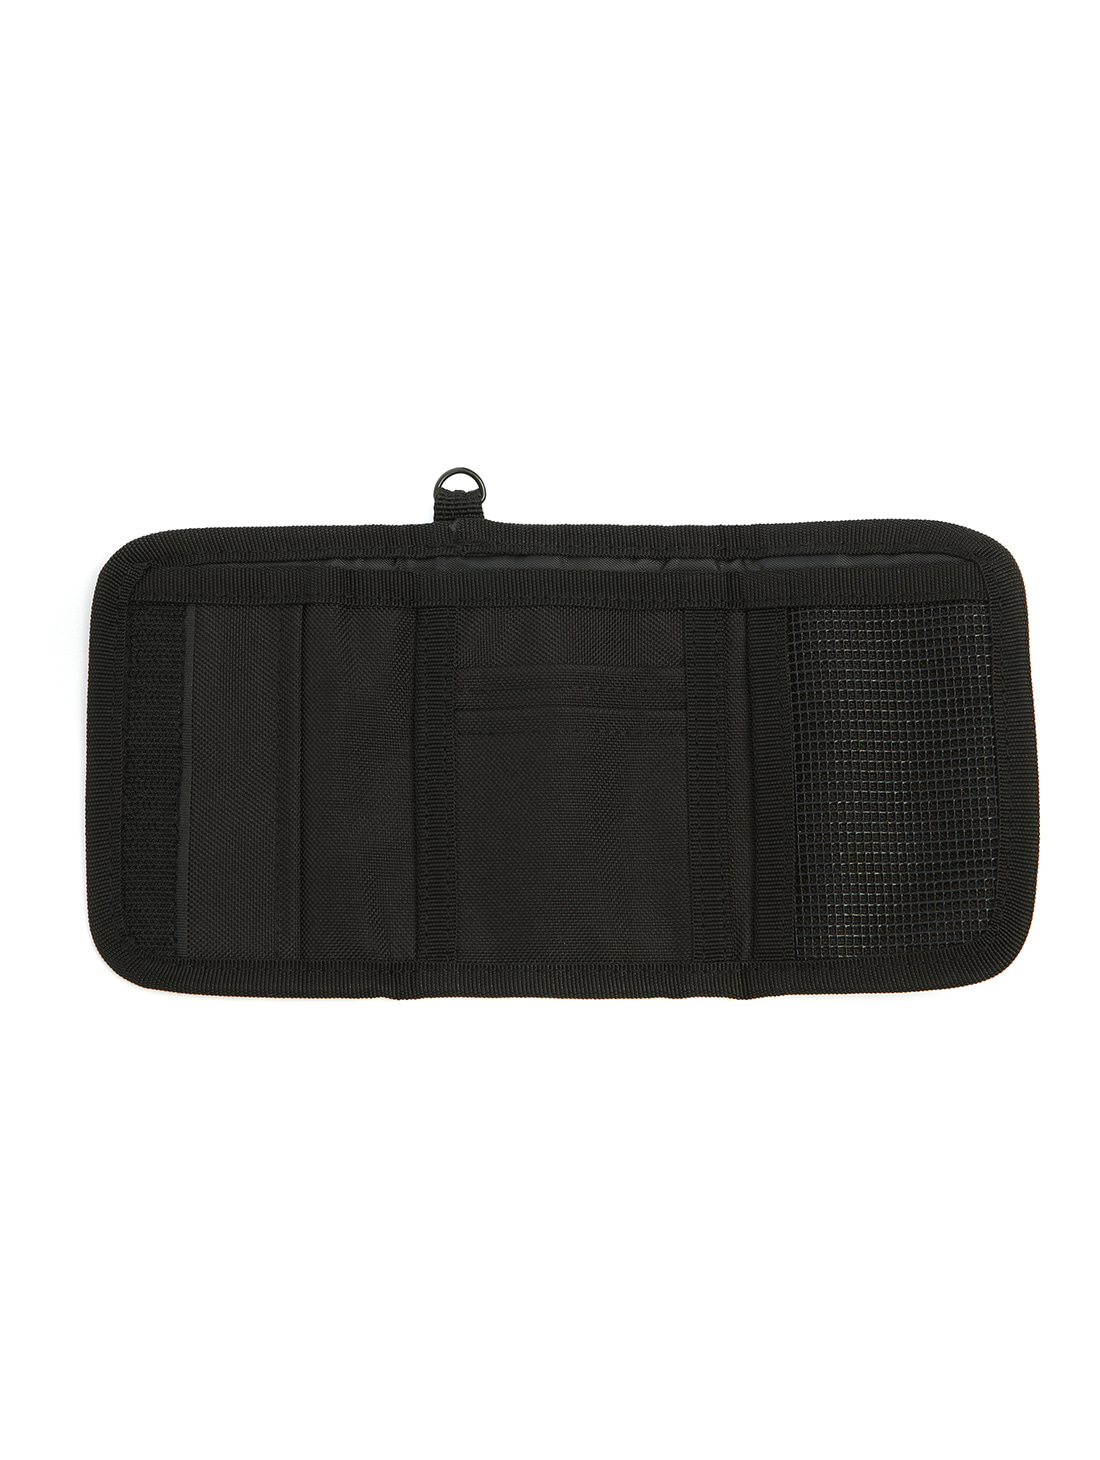 VELCRO WALLET - BLACK